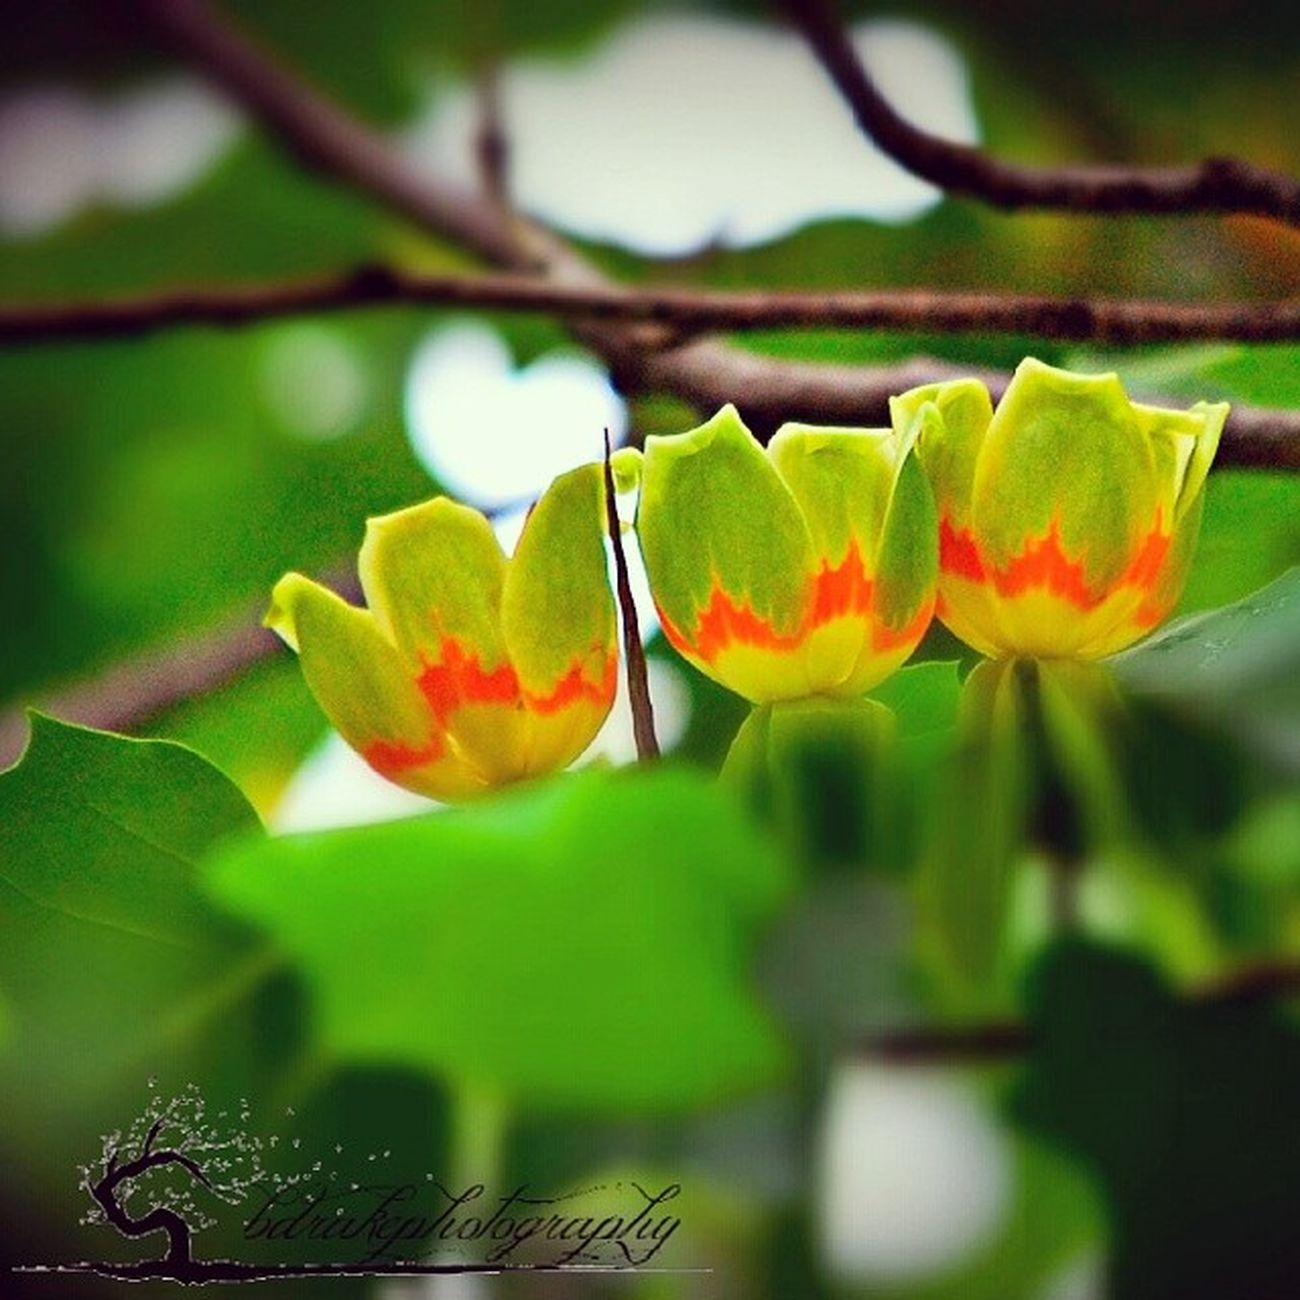 "This is a picture i took of my neighbor's Tulip tree in bloom during Latespring Earlysummer . ""The earth laughs in flowers"" NatureIsBeautiful lookclose fullofwonder"